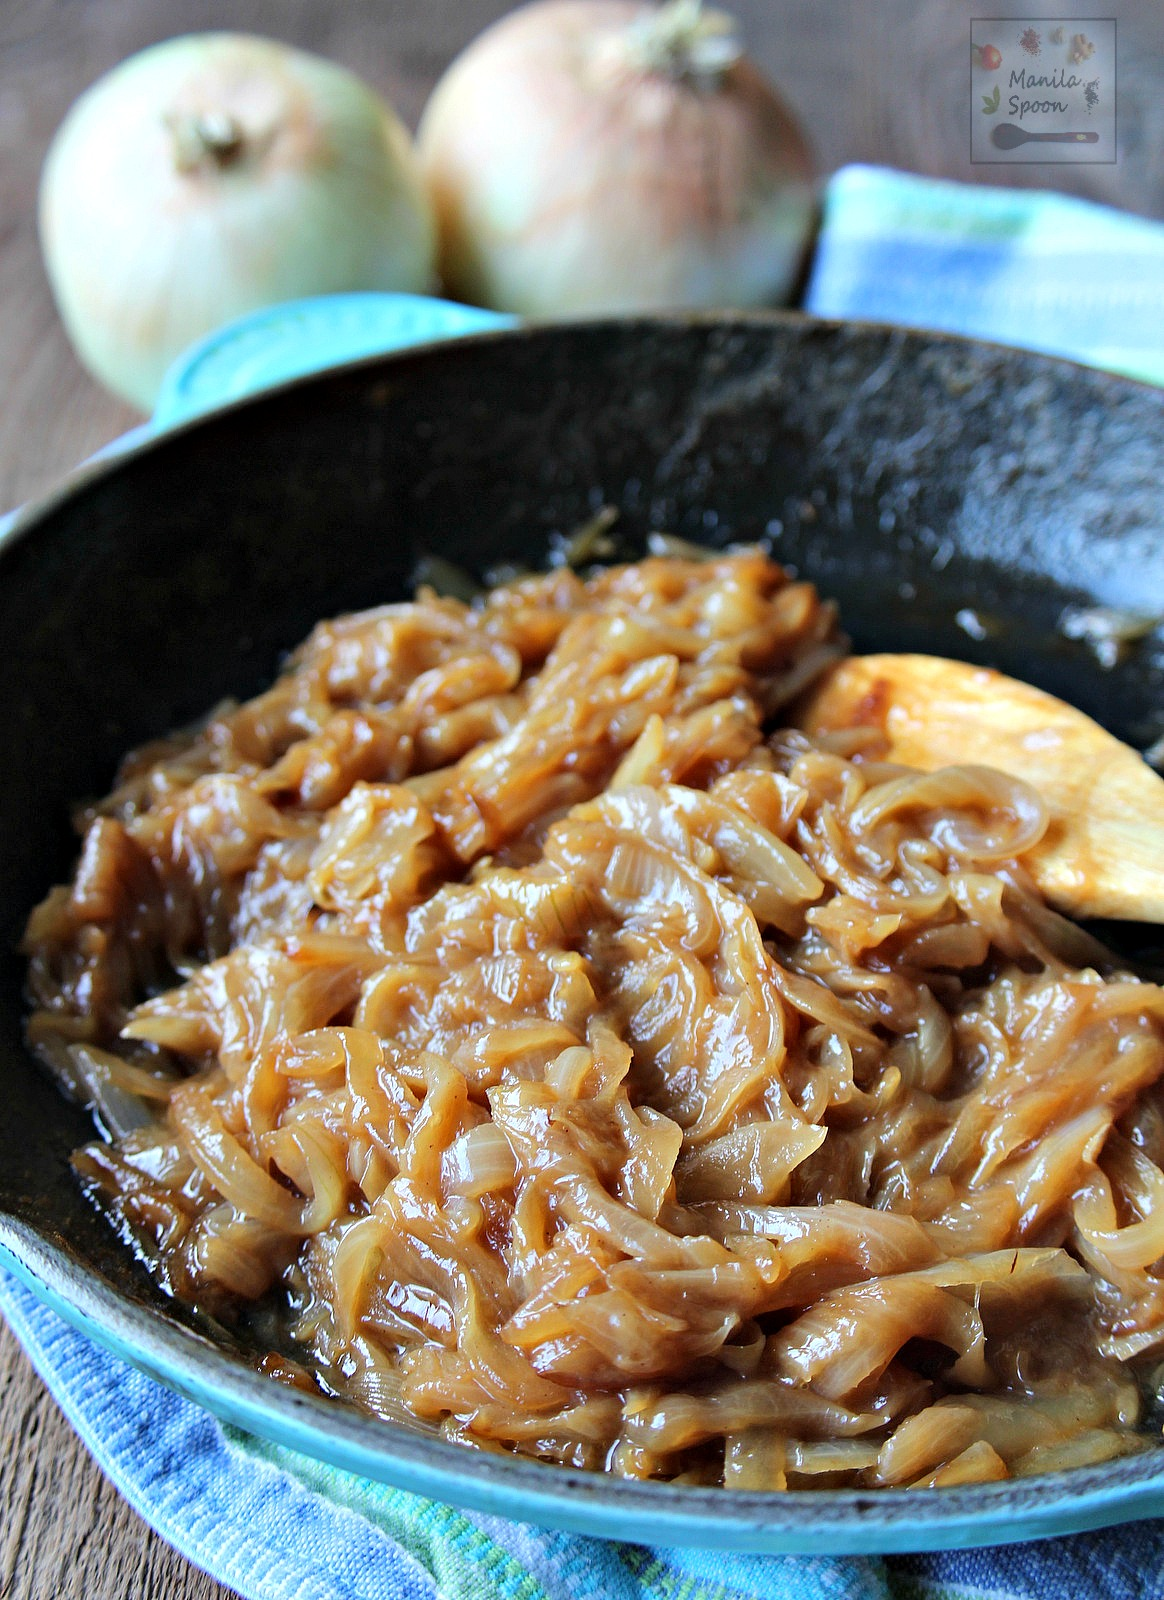 Just a few ingredients are needed to turn a batch of onions into something delightfully rich, sweet and savory. Use caramelized onions as pizza topping, for sandwiches, salad, to jazz up appetizers and so much more! | manilaspoon.com